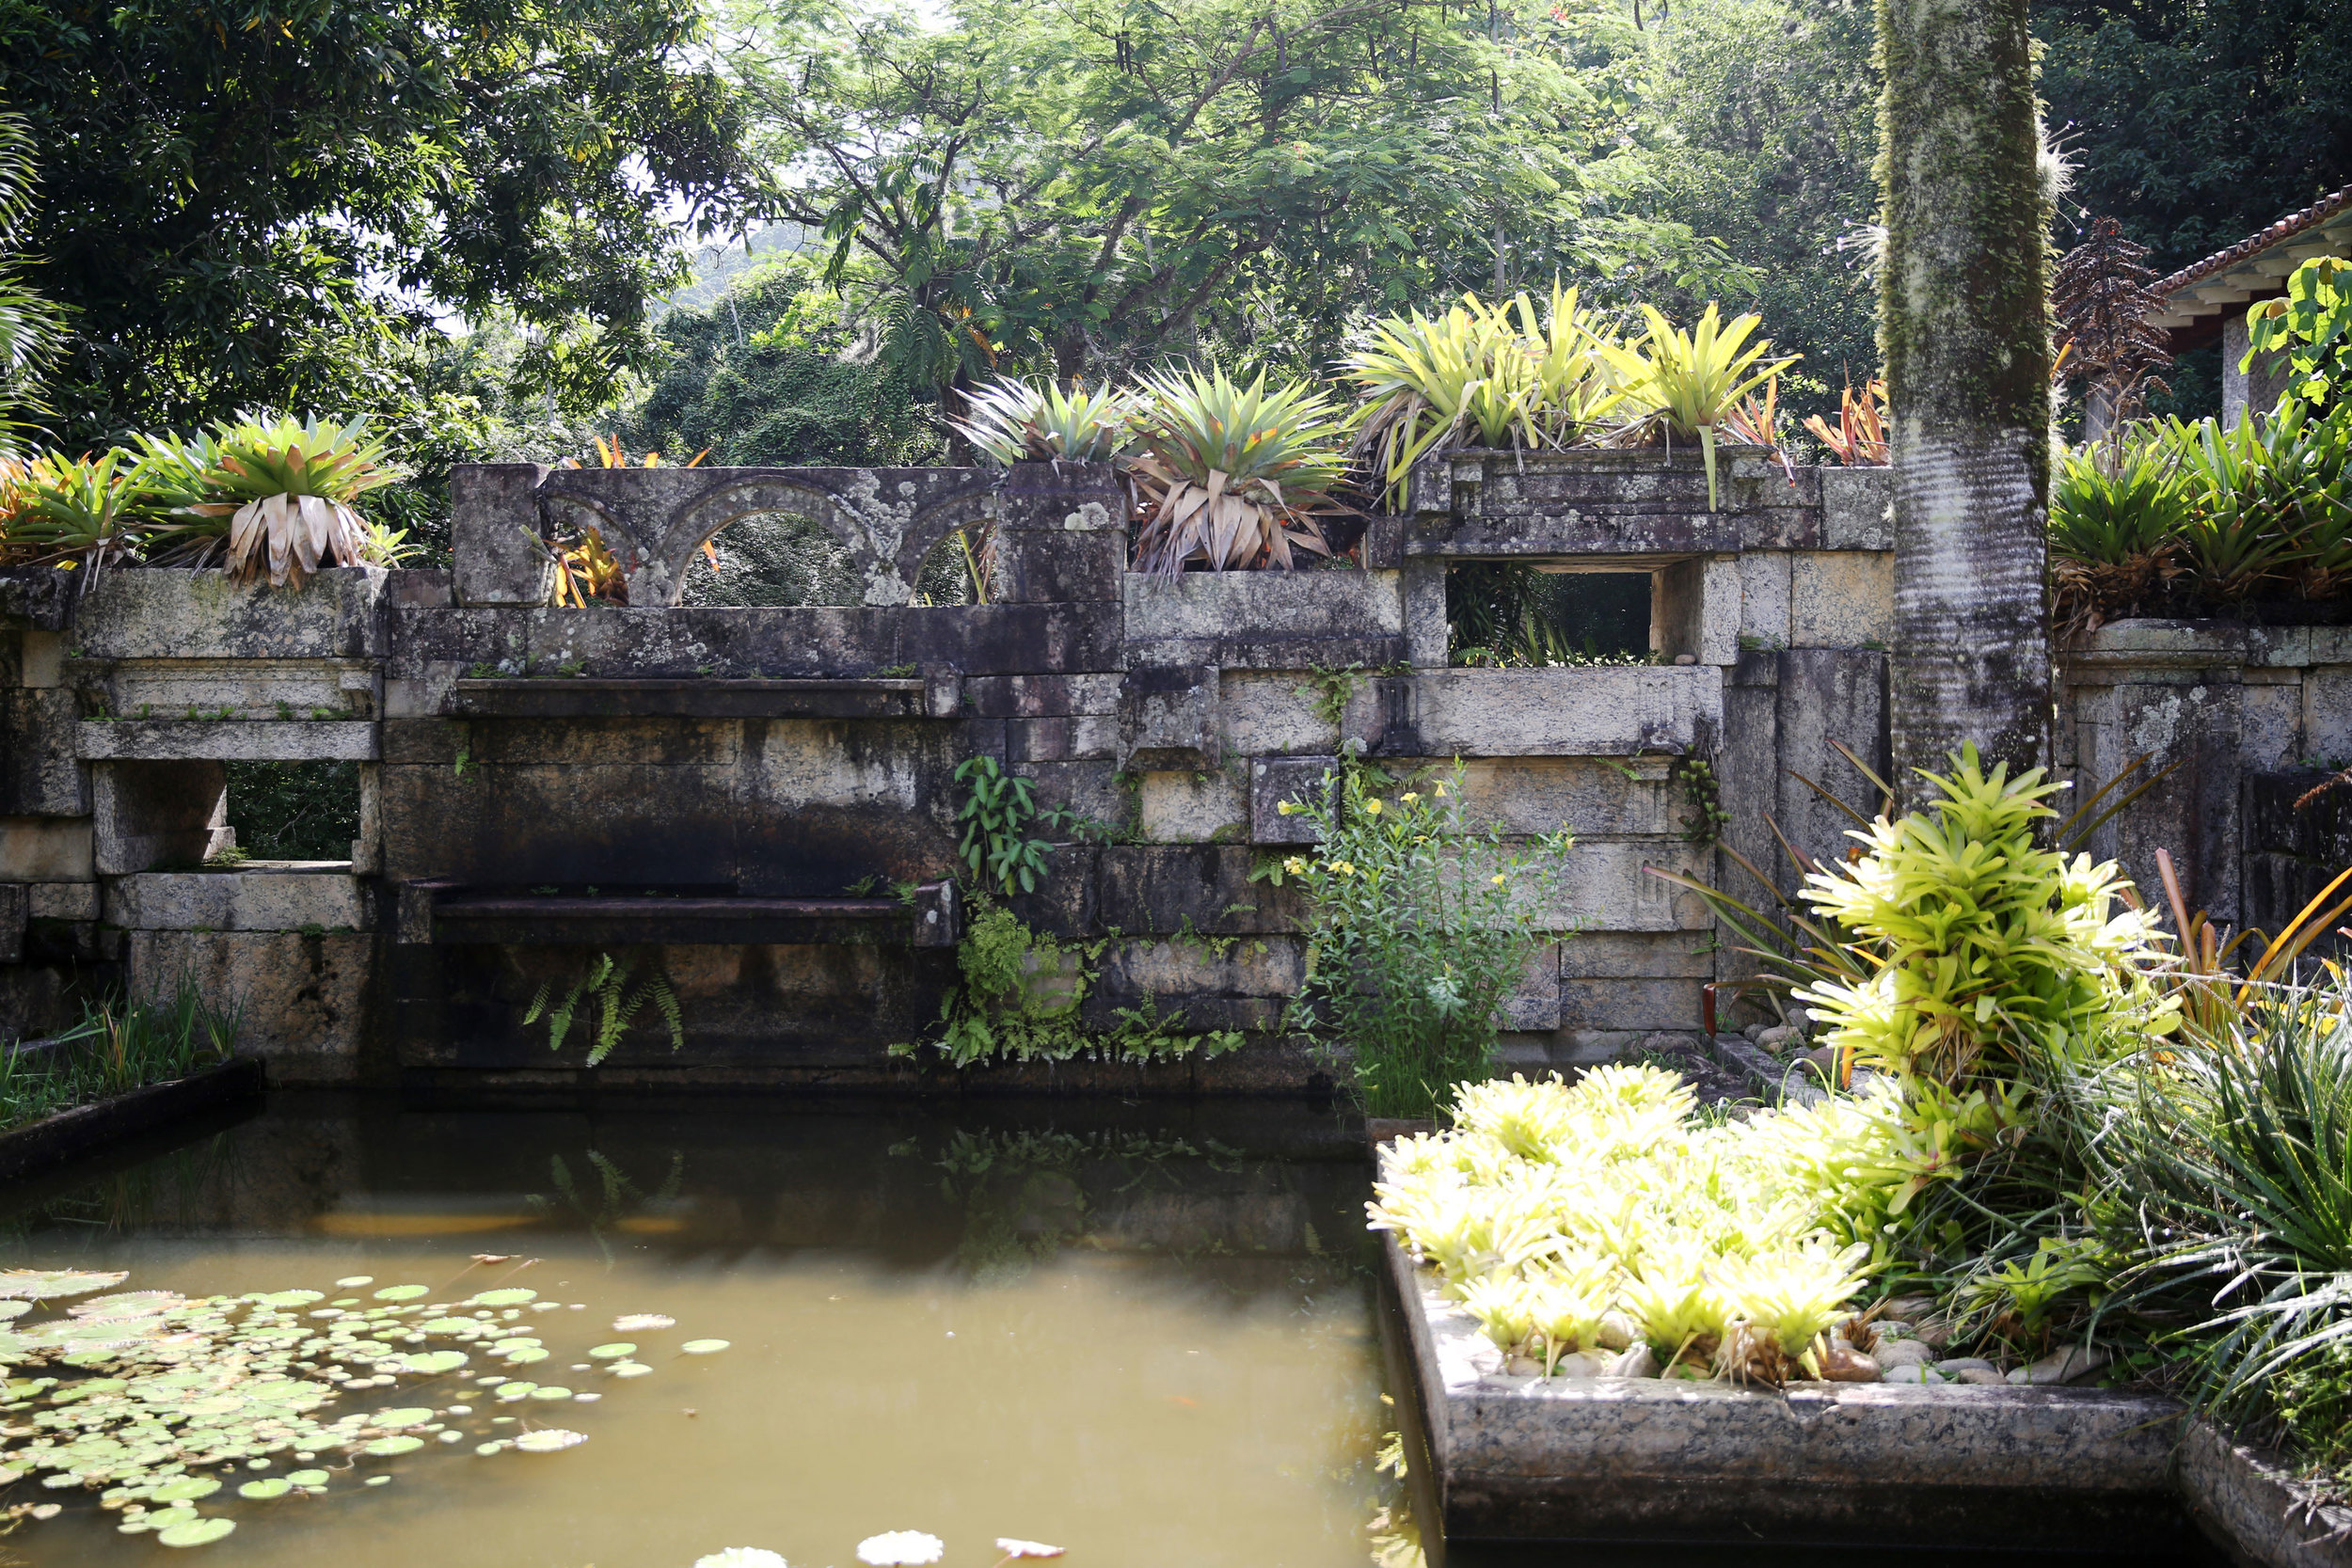 For the wall of this fountain, Burle Marx used stones from a building on demolition in the city center.